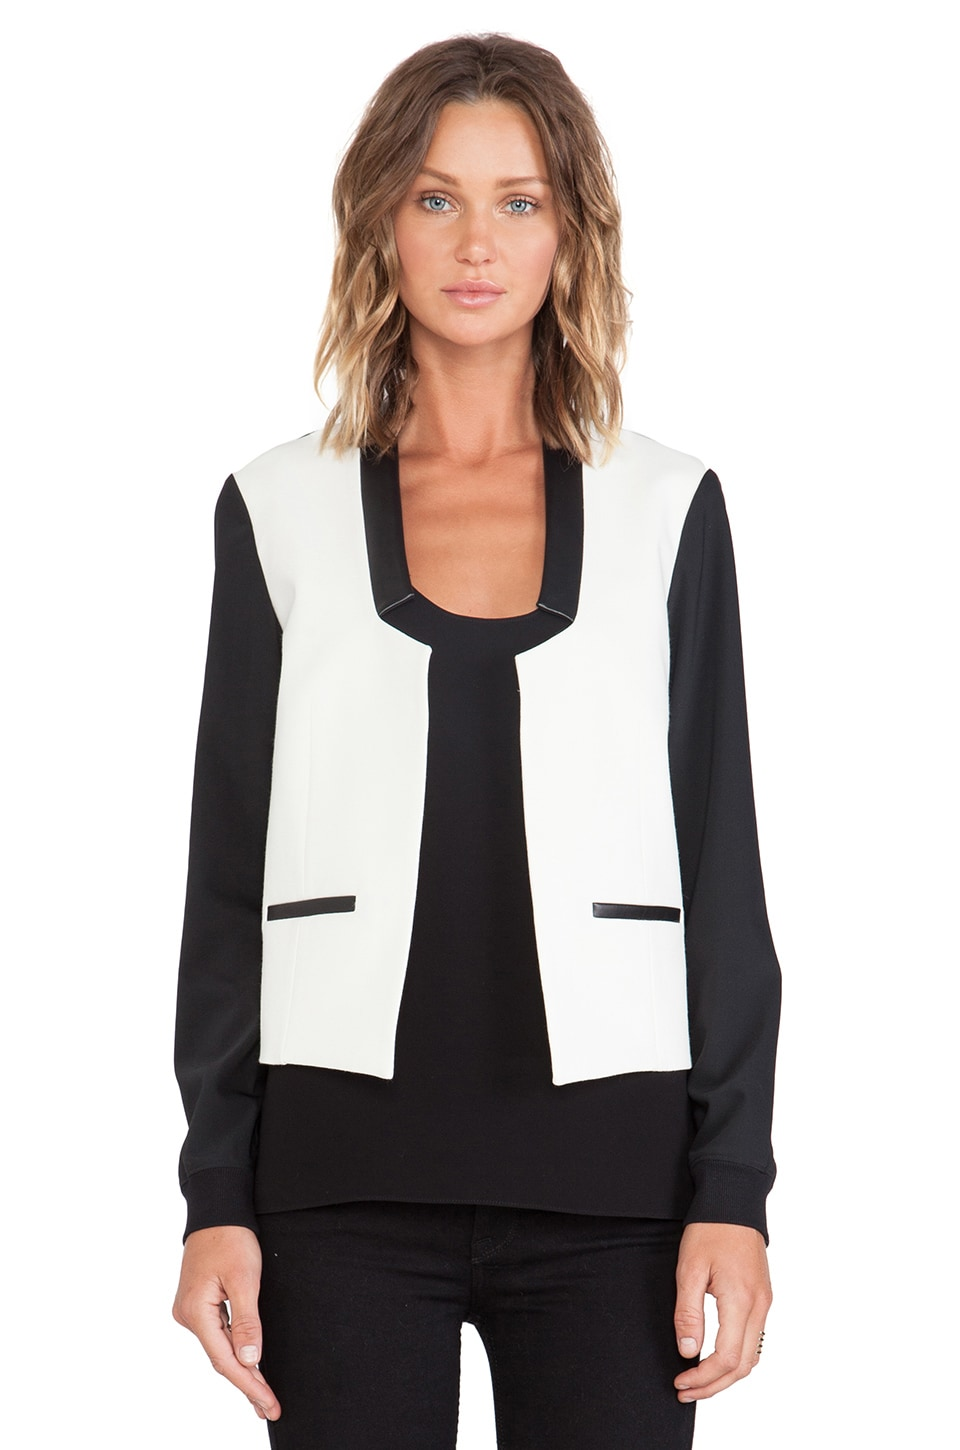 Tibi Tropical Wool Paneled Bomber in Black Multi